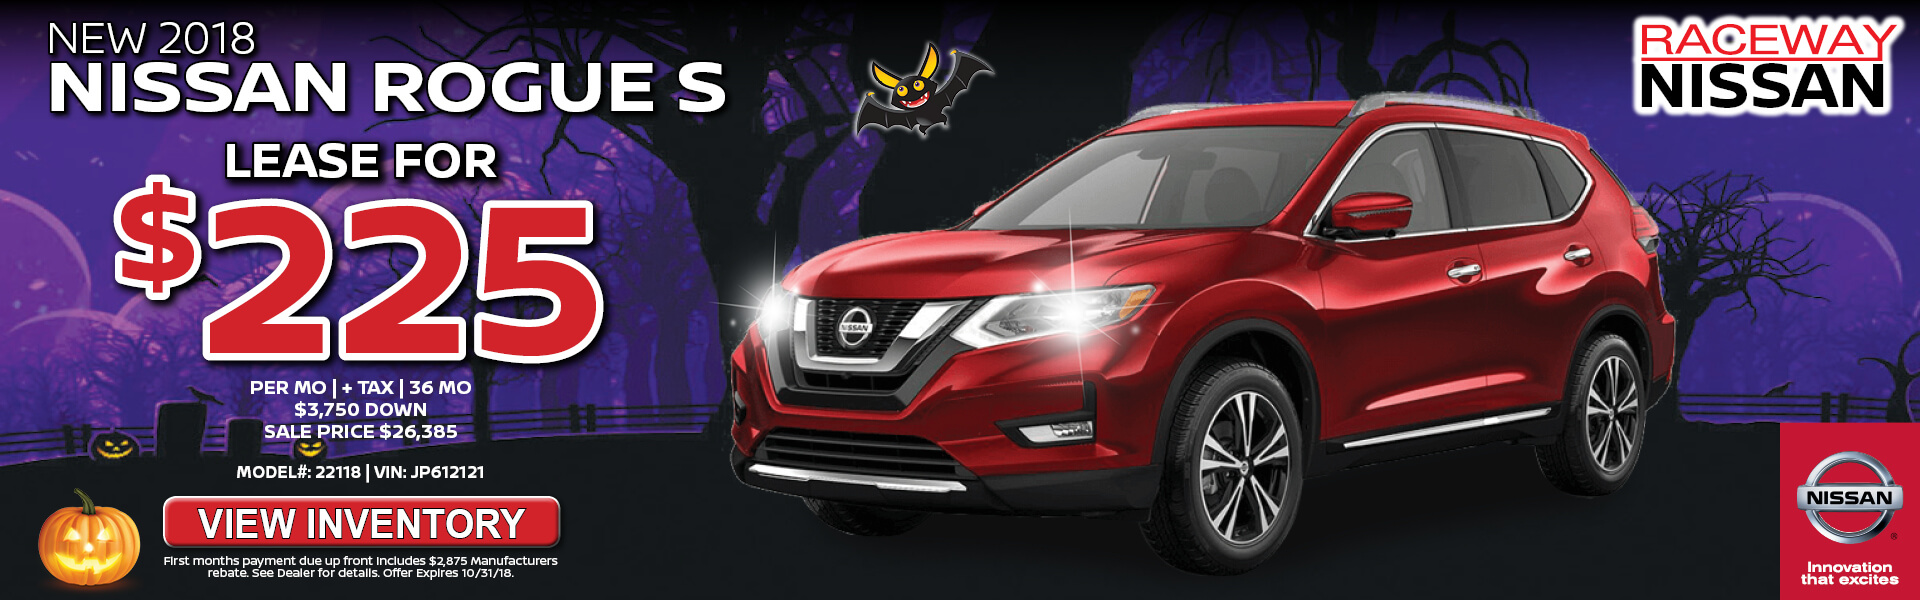 Nissan Rogue $225 Lease